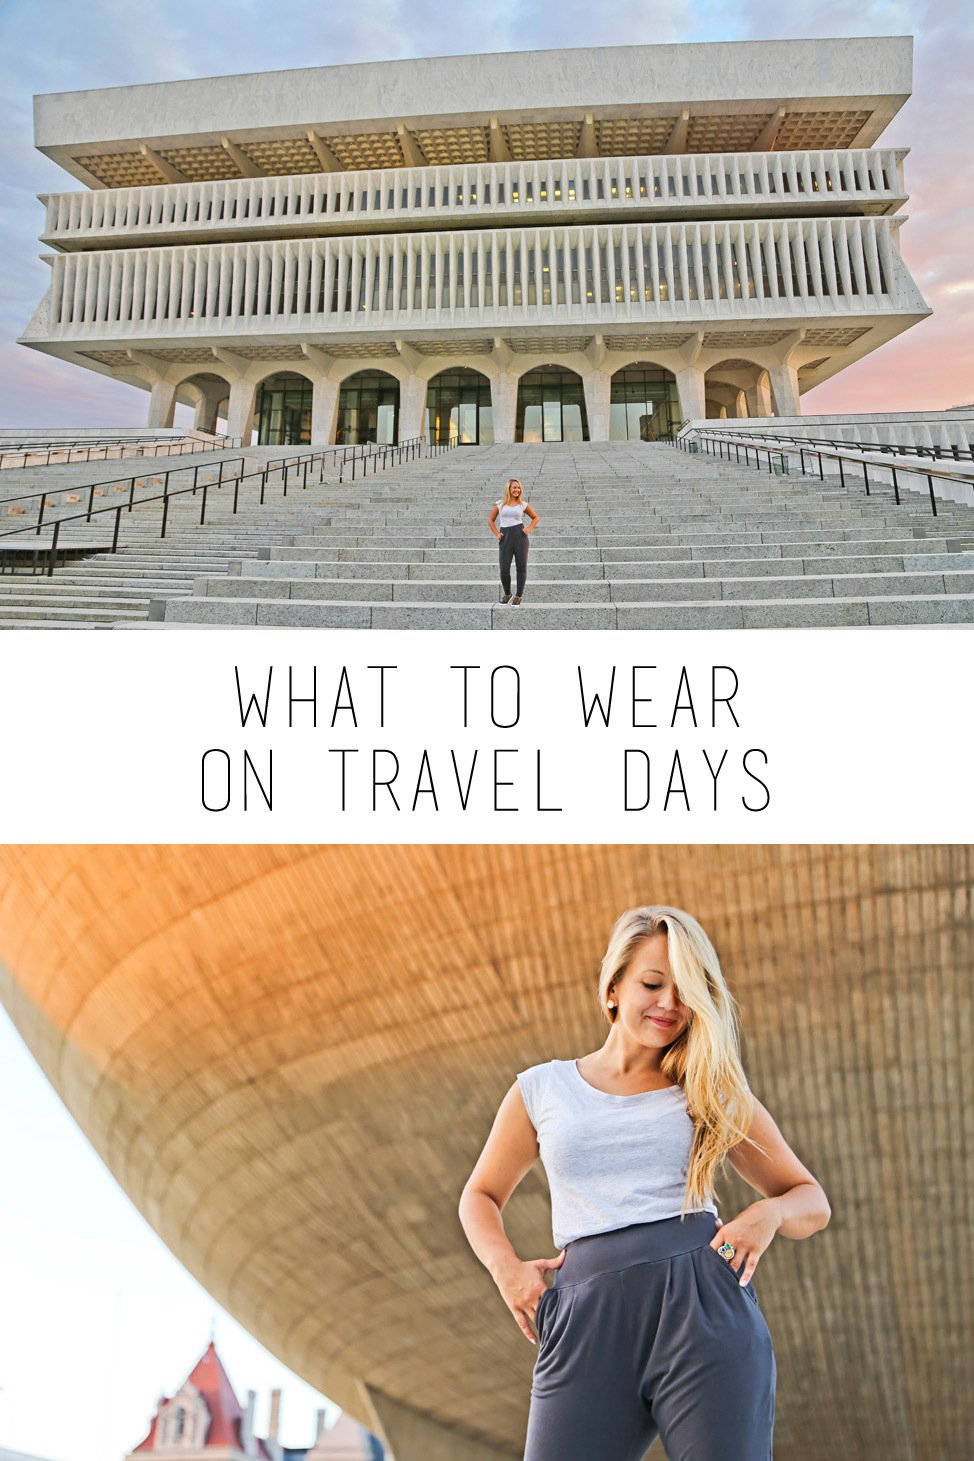 What to Wear on Travel Days